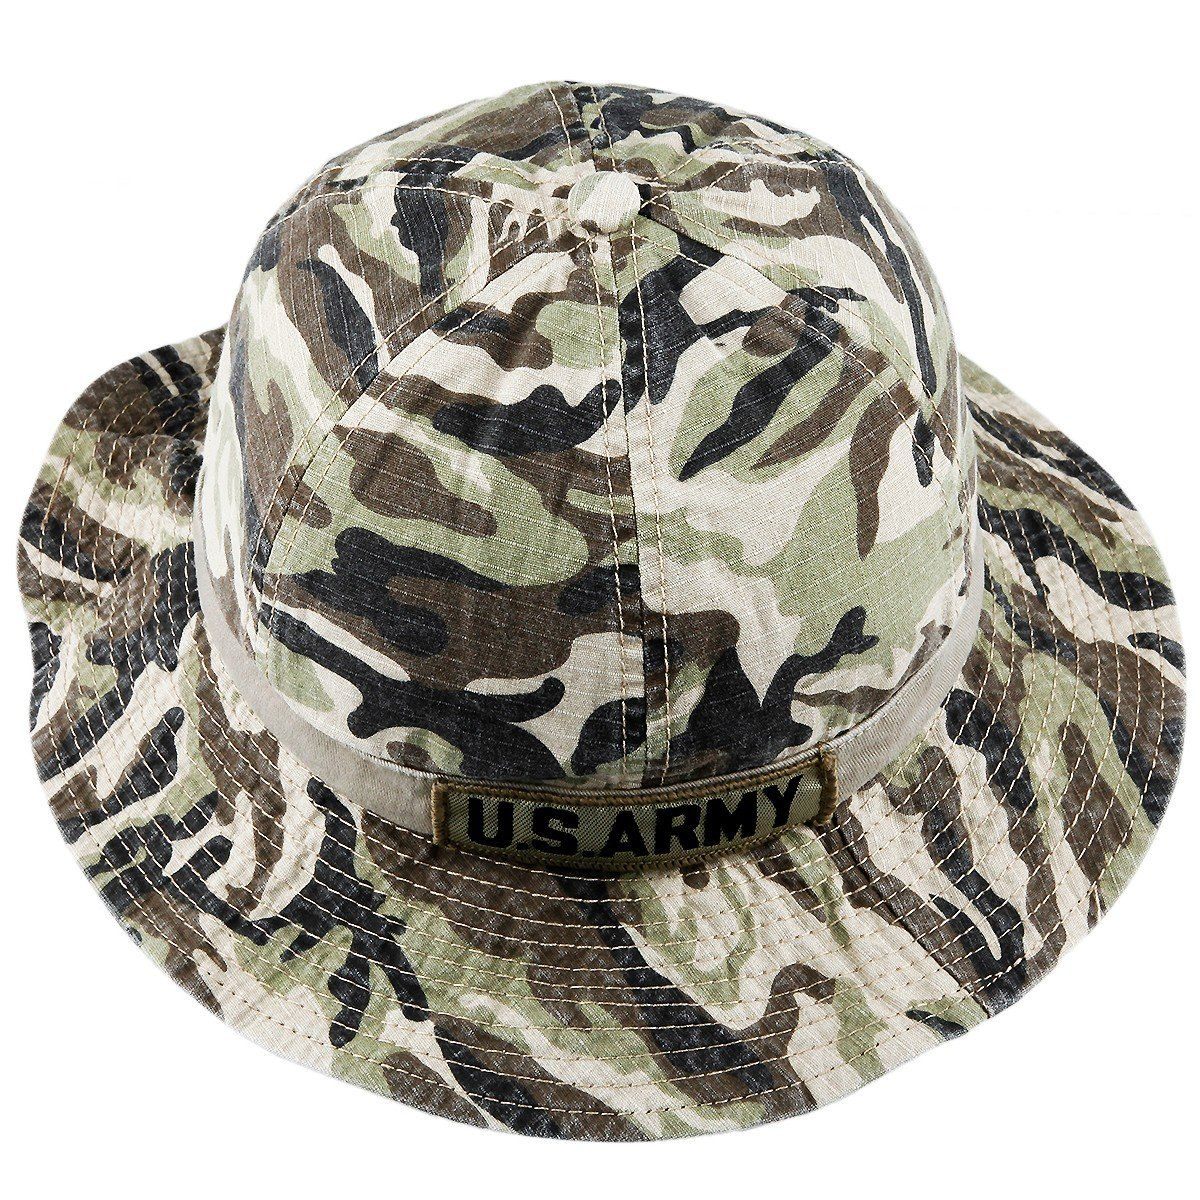 3f2ea1dd55e squaregarden Bucket Hats for Men Military Camouflage Tactical Rip-stop Boonie  Hat Cap. Squaregarden